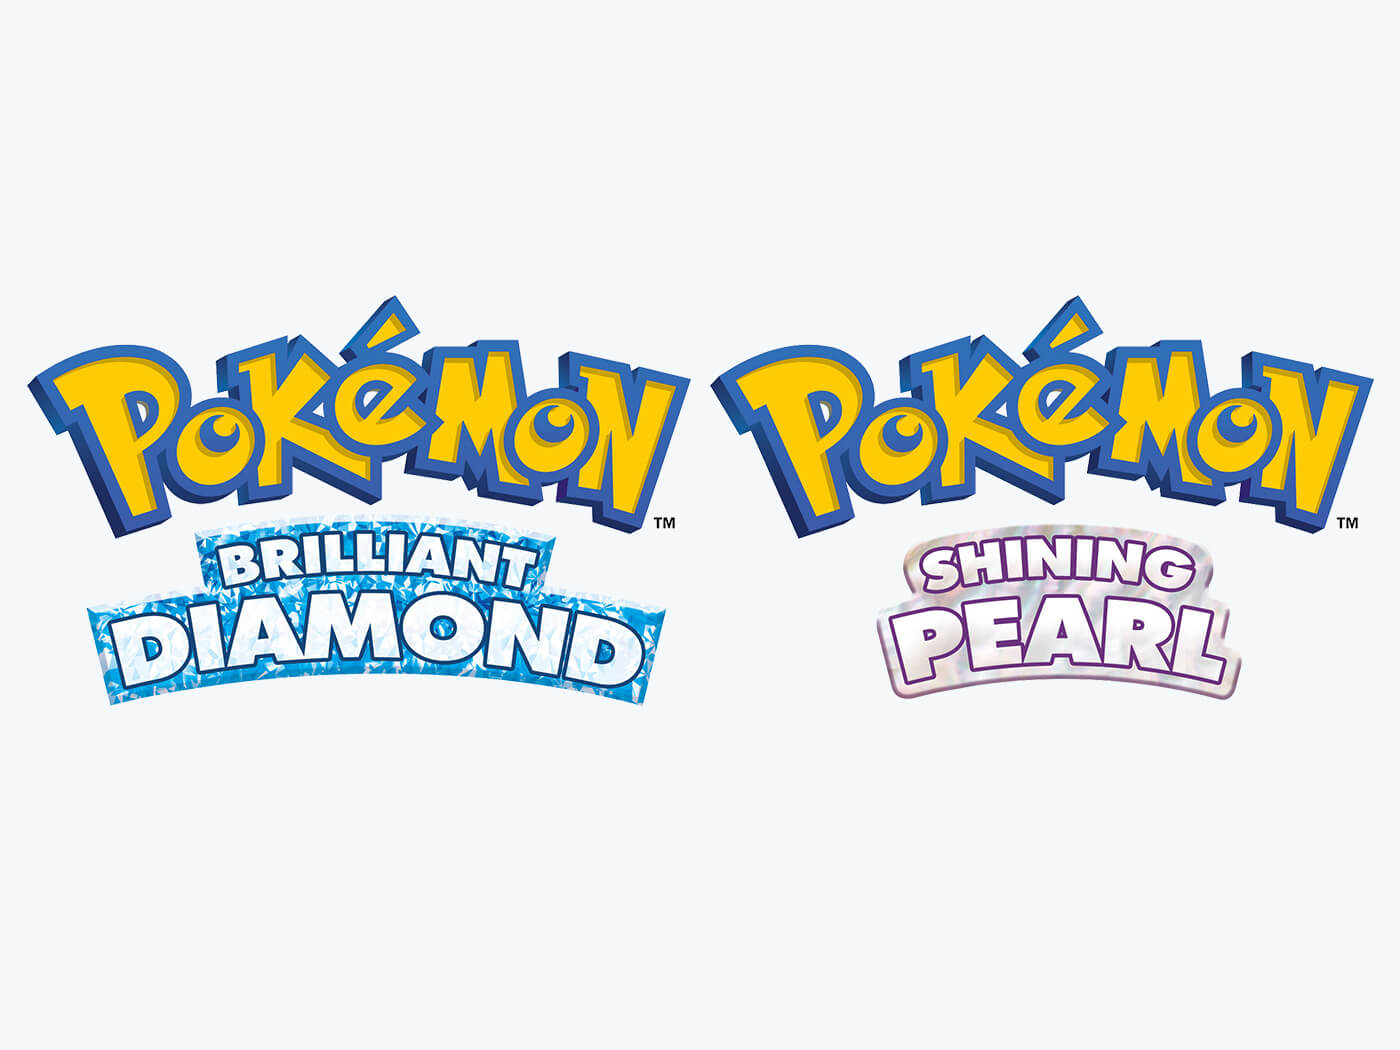 Pokémon Brilliant Diamond and Pokémon Shining Pearl